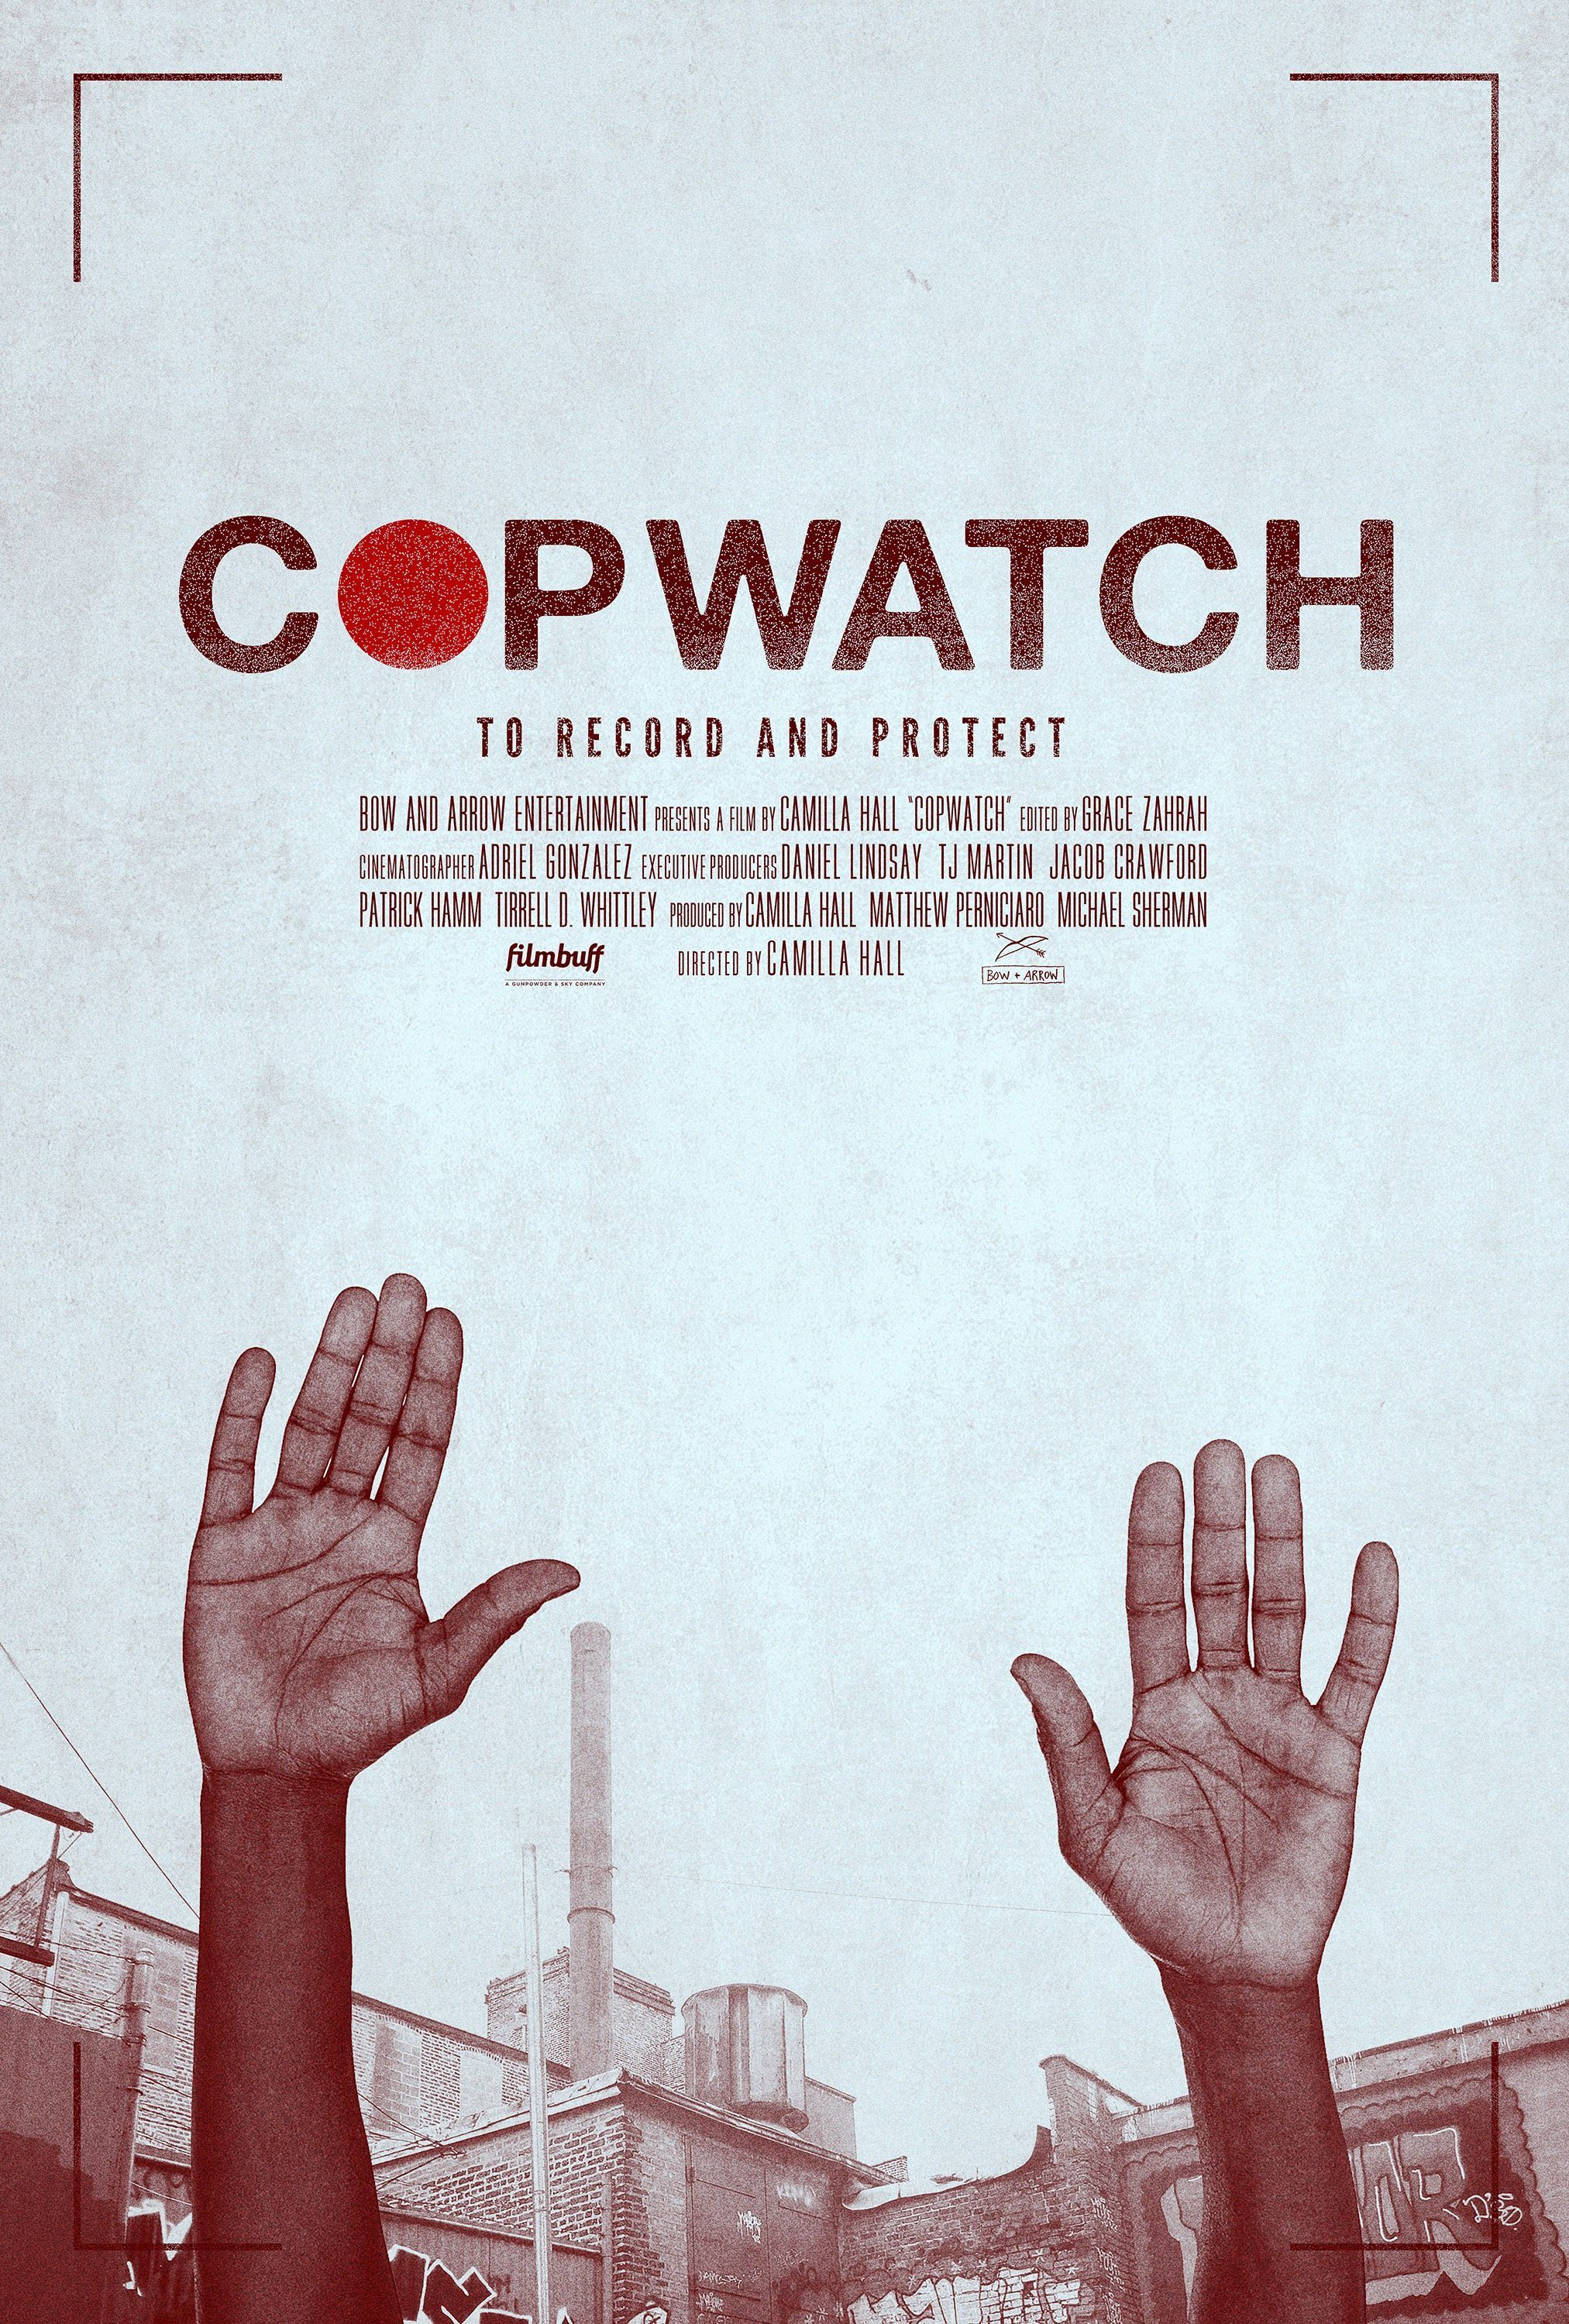 Copwatch 2017 hd wallpaper from movies